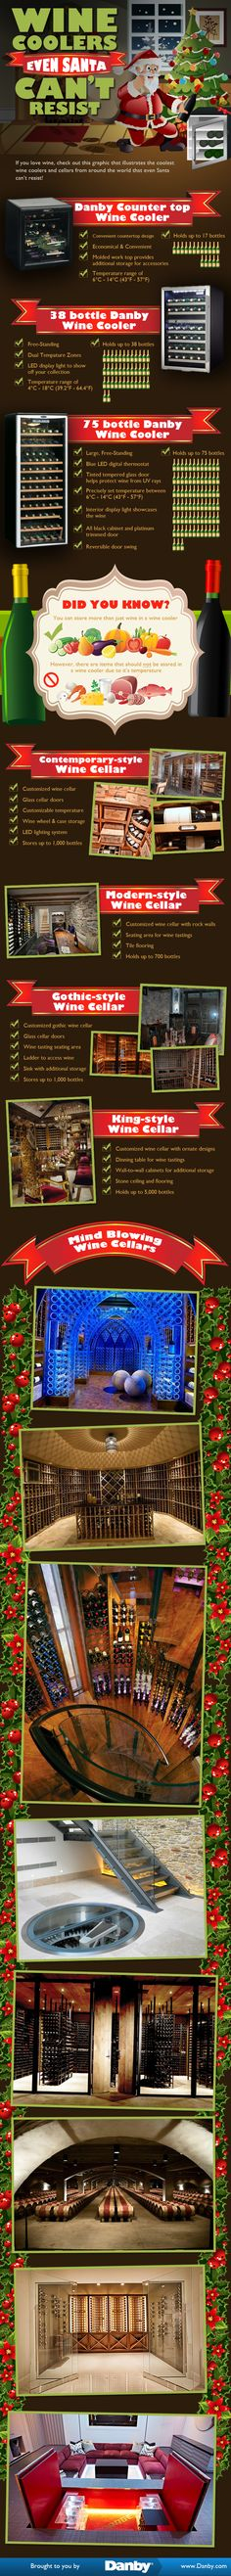 As you are enjoying your favorite spiced wines and meals this holiday season, check out this list of crazy and wild wine cellars and wine coolers. Happy Holidays from our family here at Danby to yours at home!